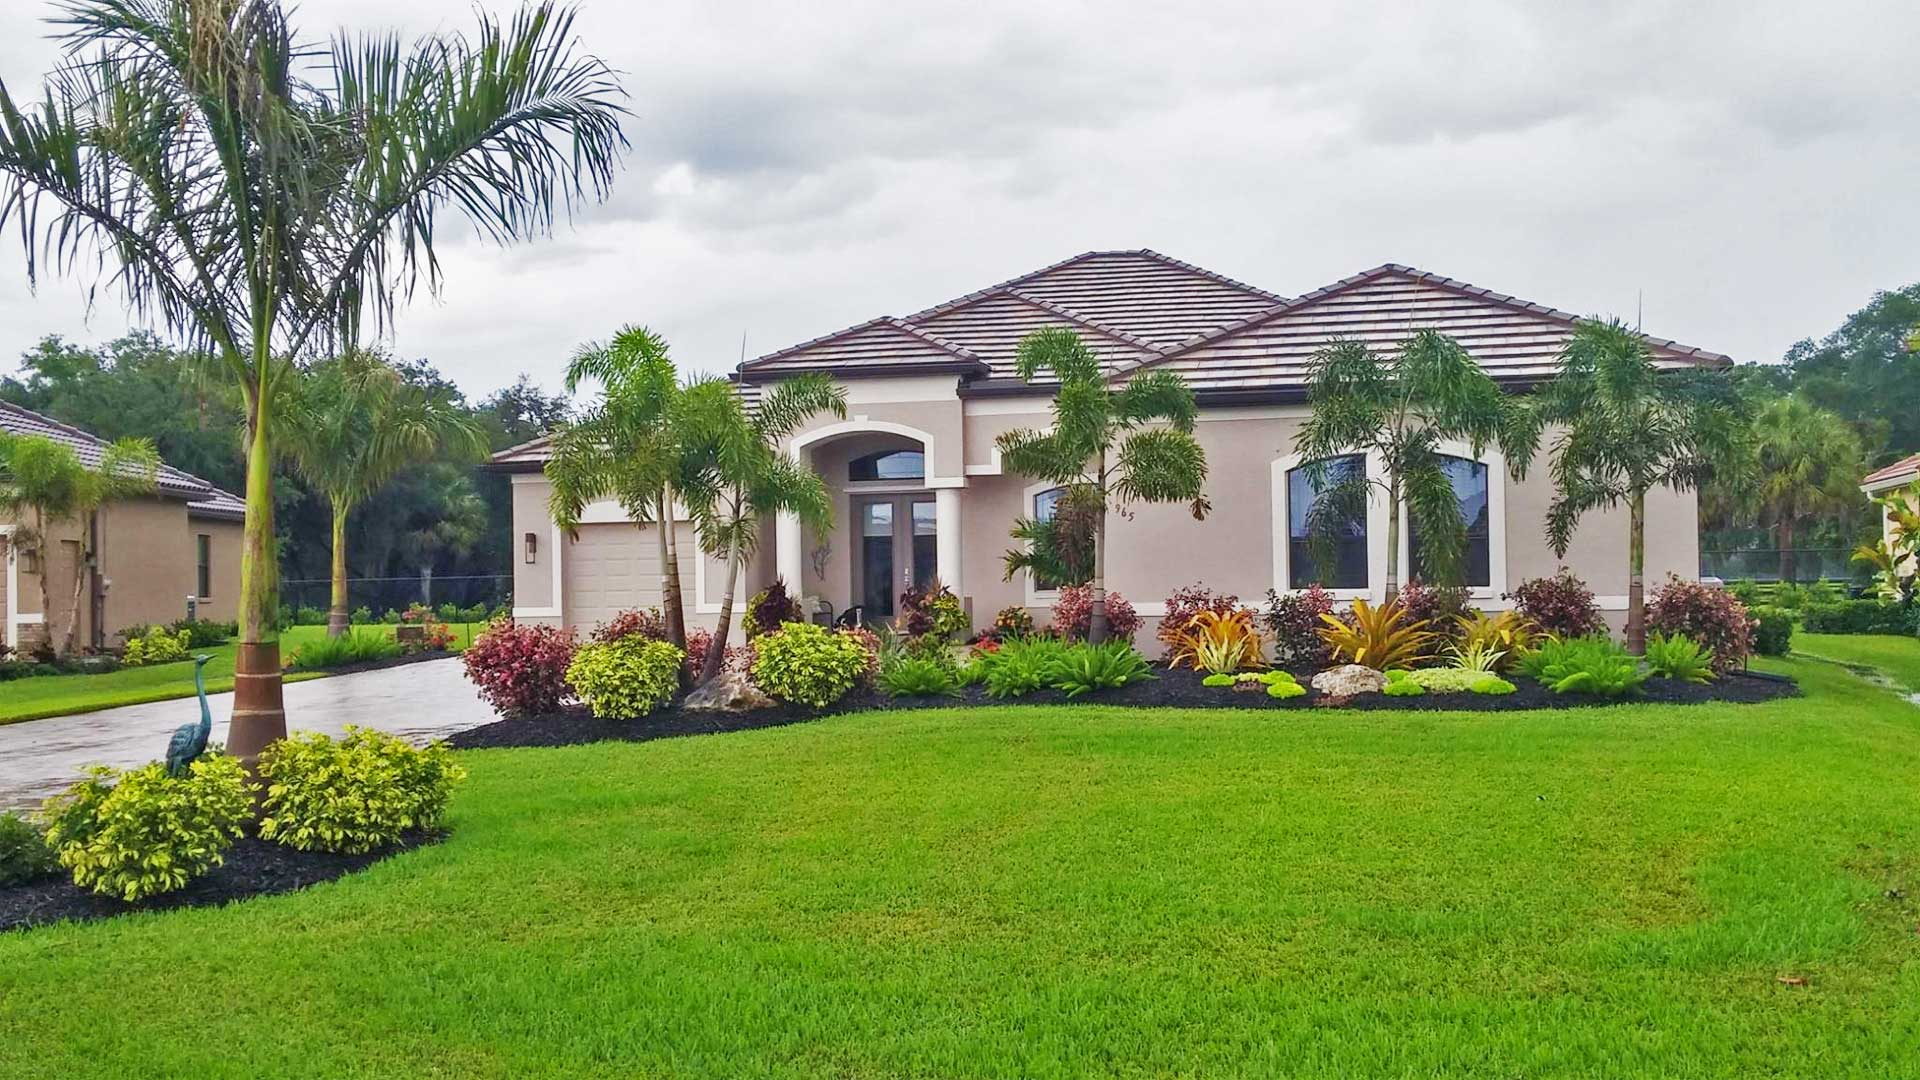 Palmetto home with new landscaping and lawn service.